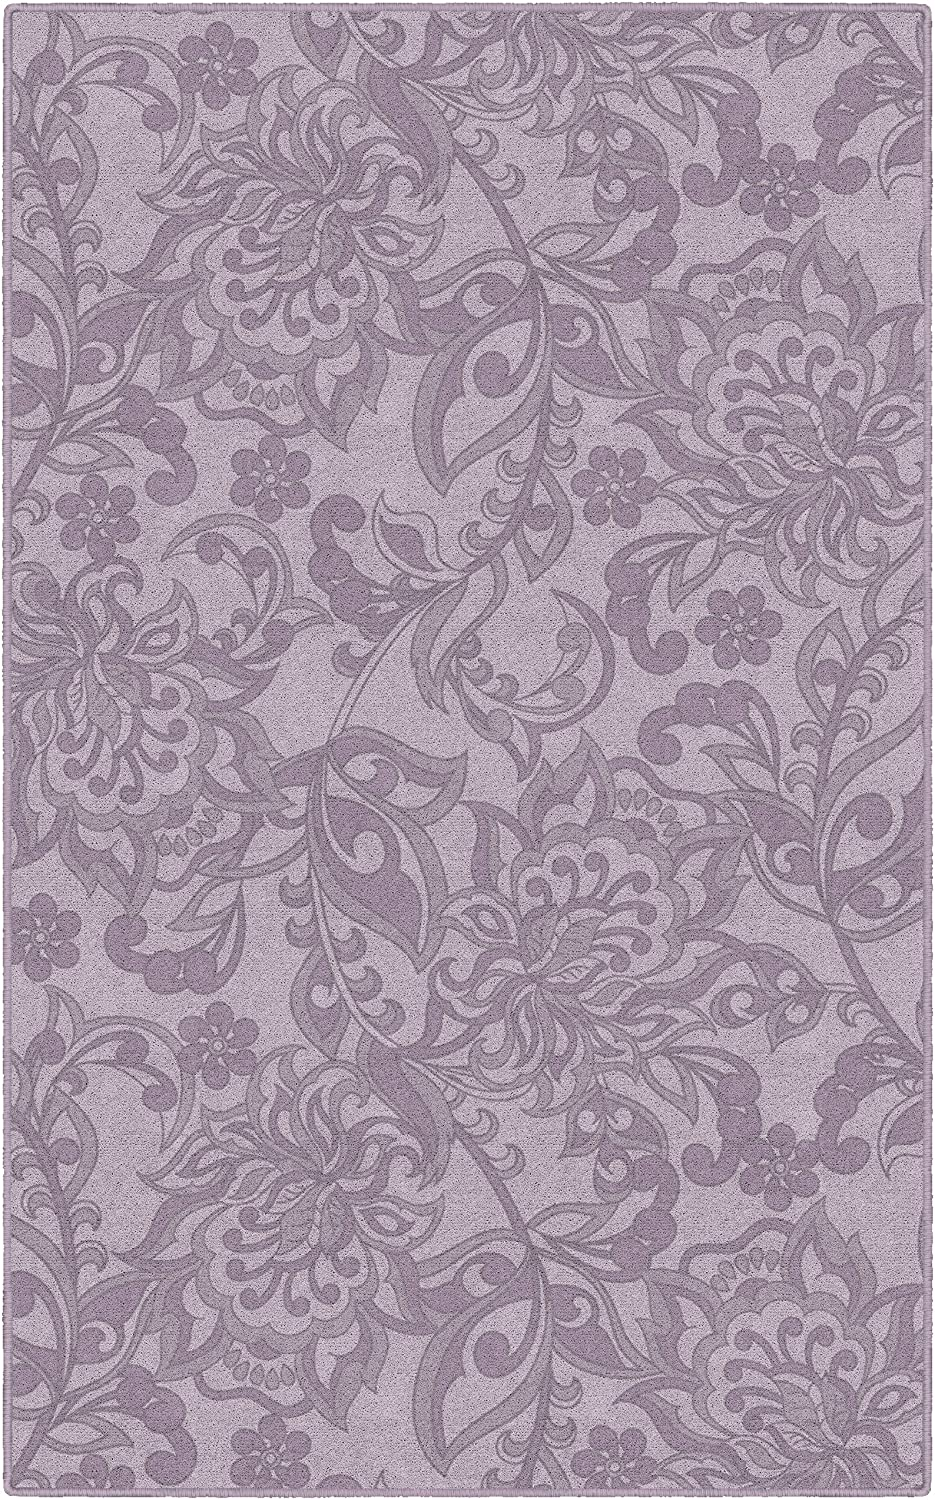 Brumlow MILLS Jacobean Traditional Floral and Paisley Pattern Print Home Indoor Area Rug for Living Room Decor, Dining Room, Kitchen Rug, or Bedroom, 7'6